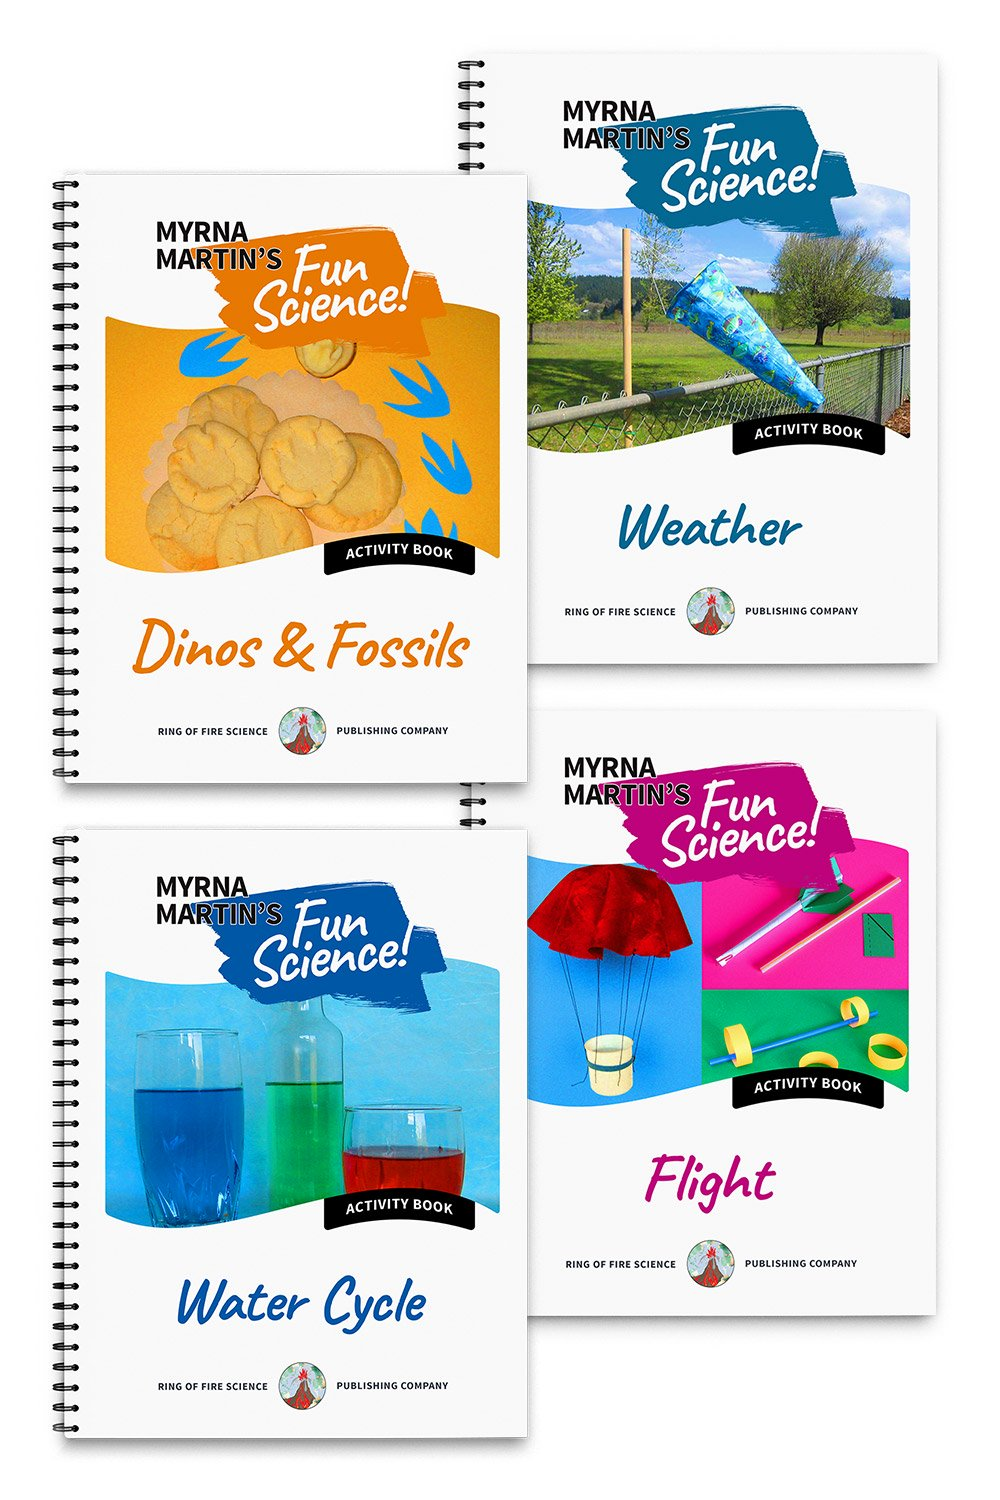 Fun Science Activities Book Package 2 by Myrna Martin